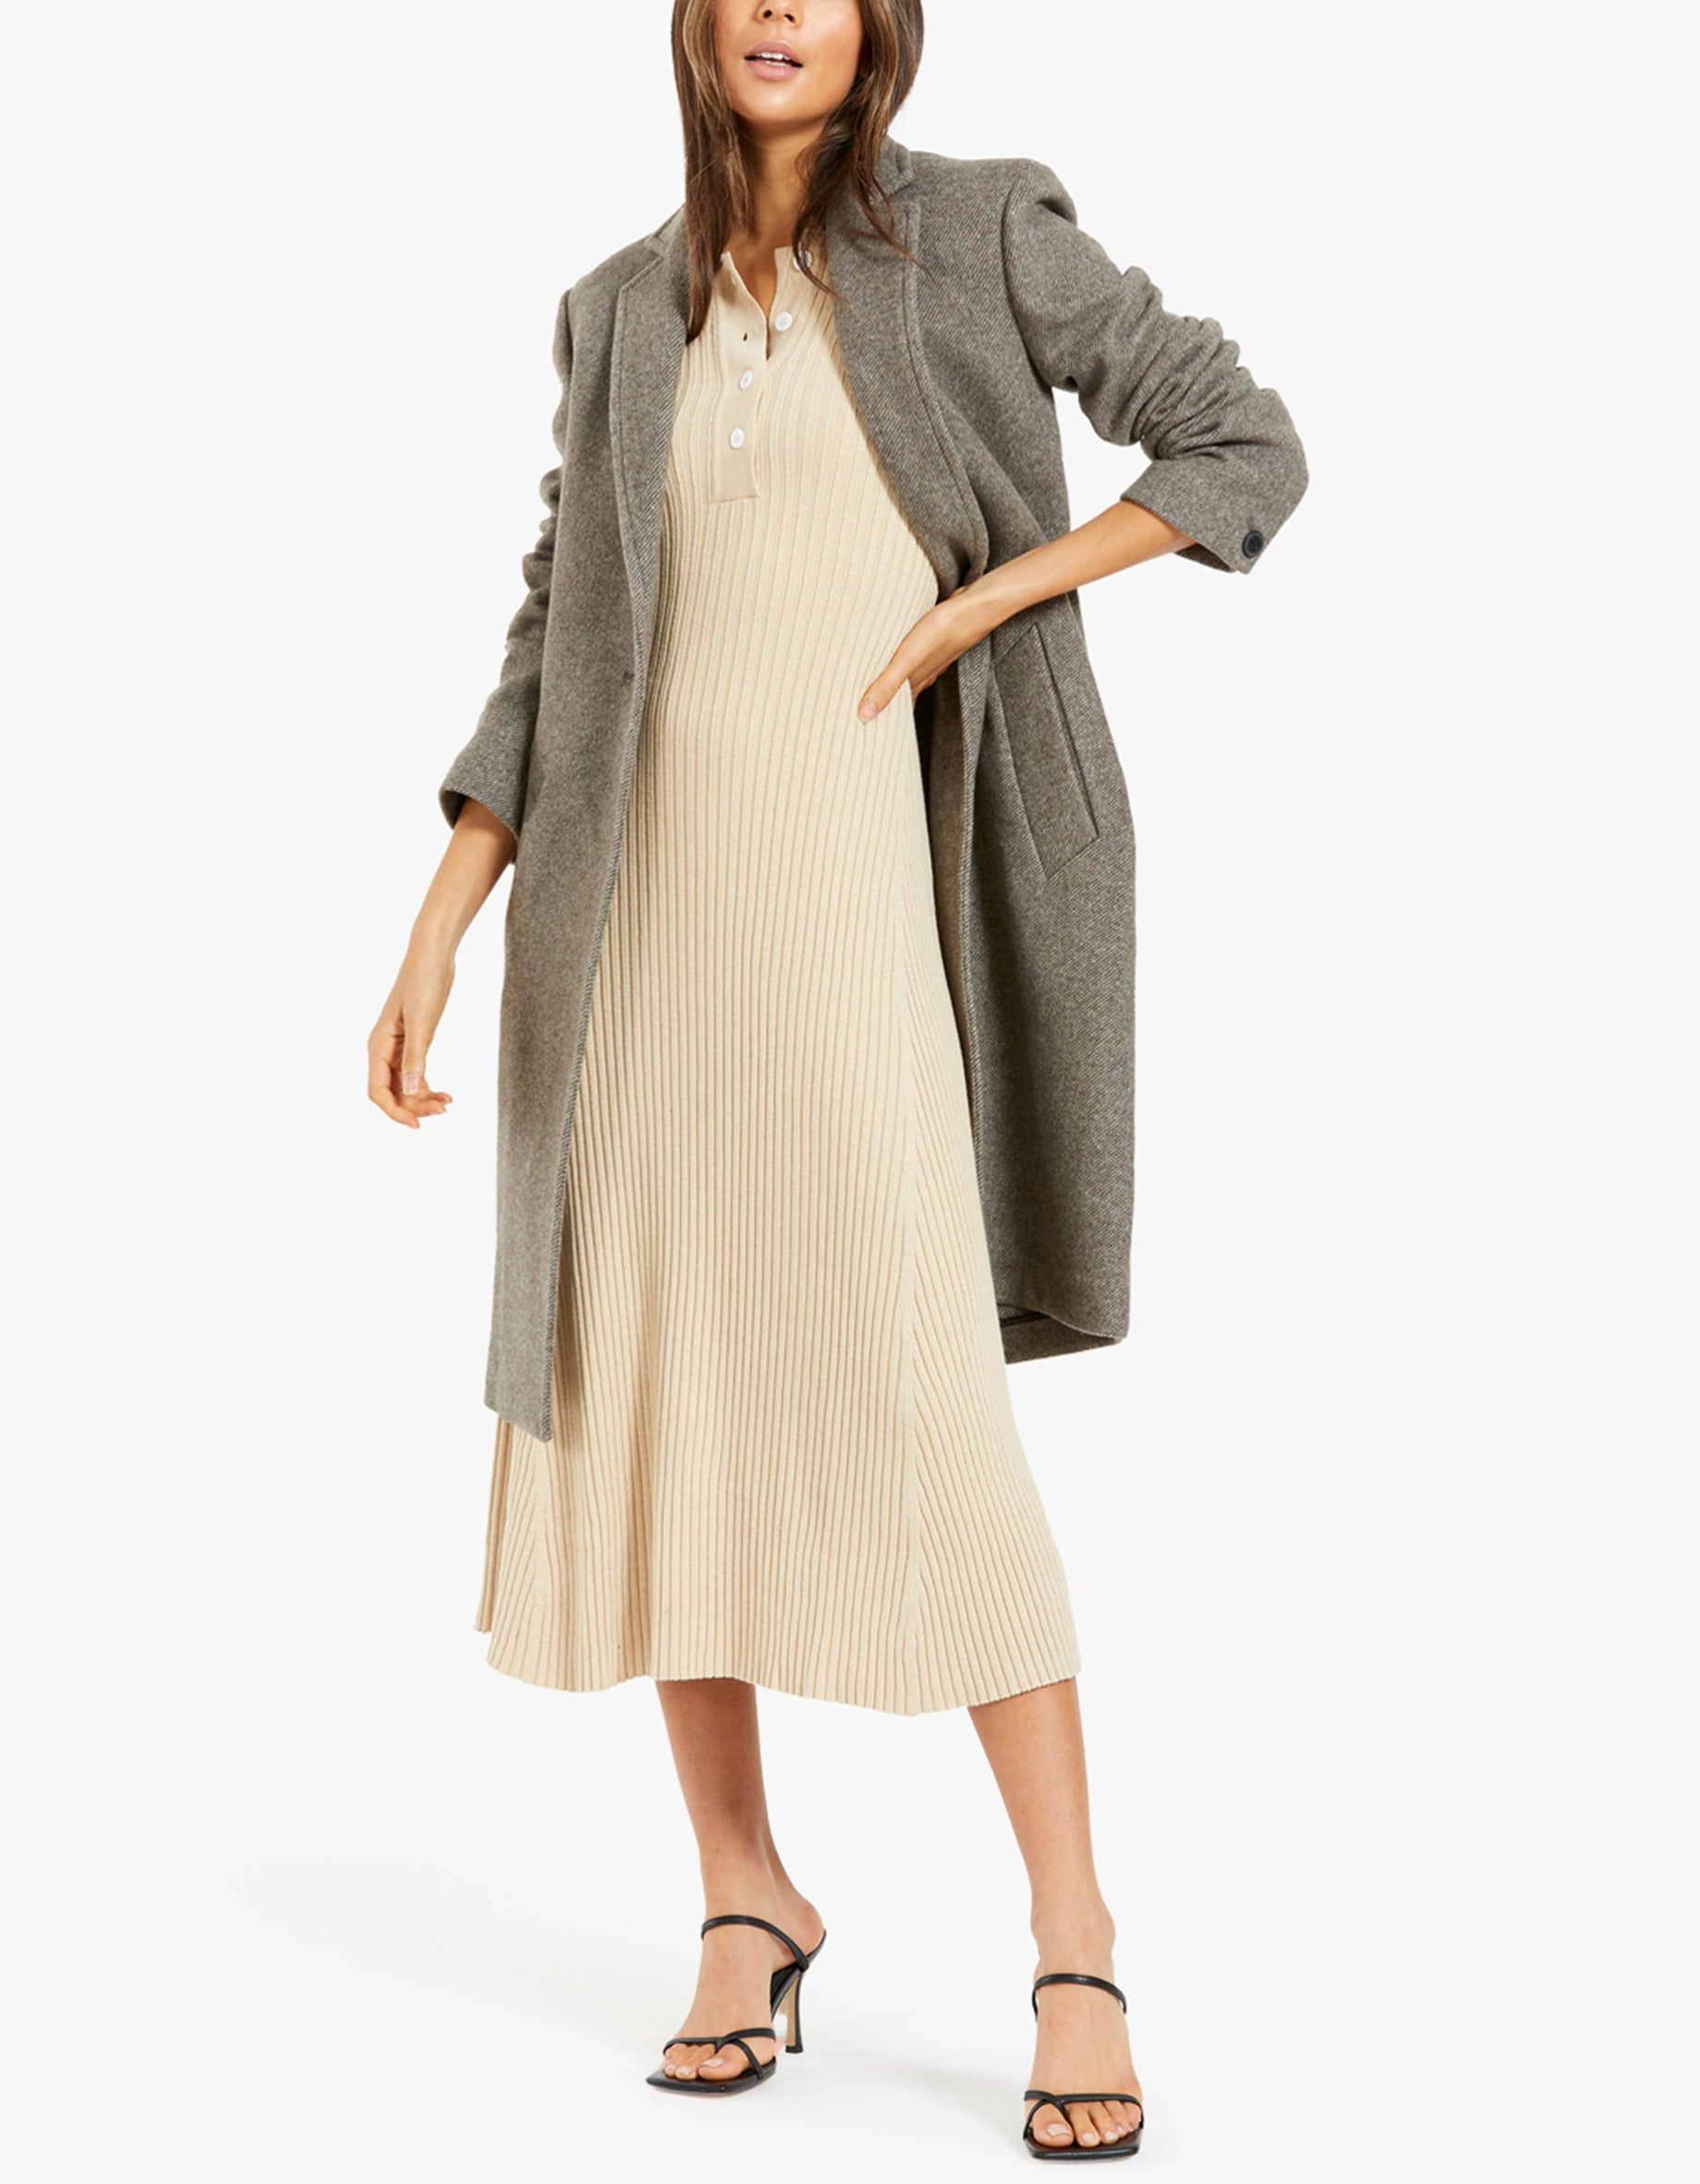 Lucy Polo Dress 13997 - Brown Rice